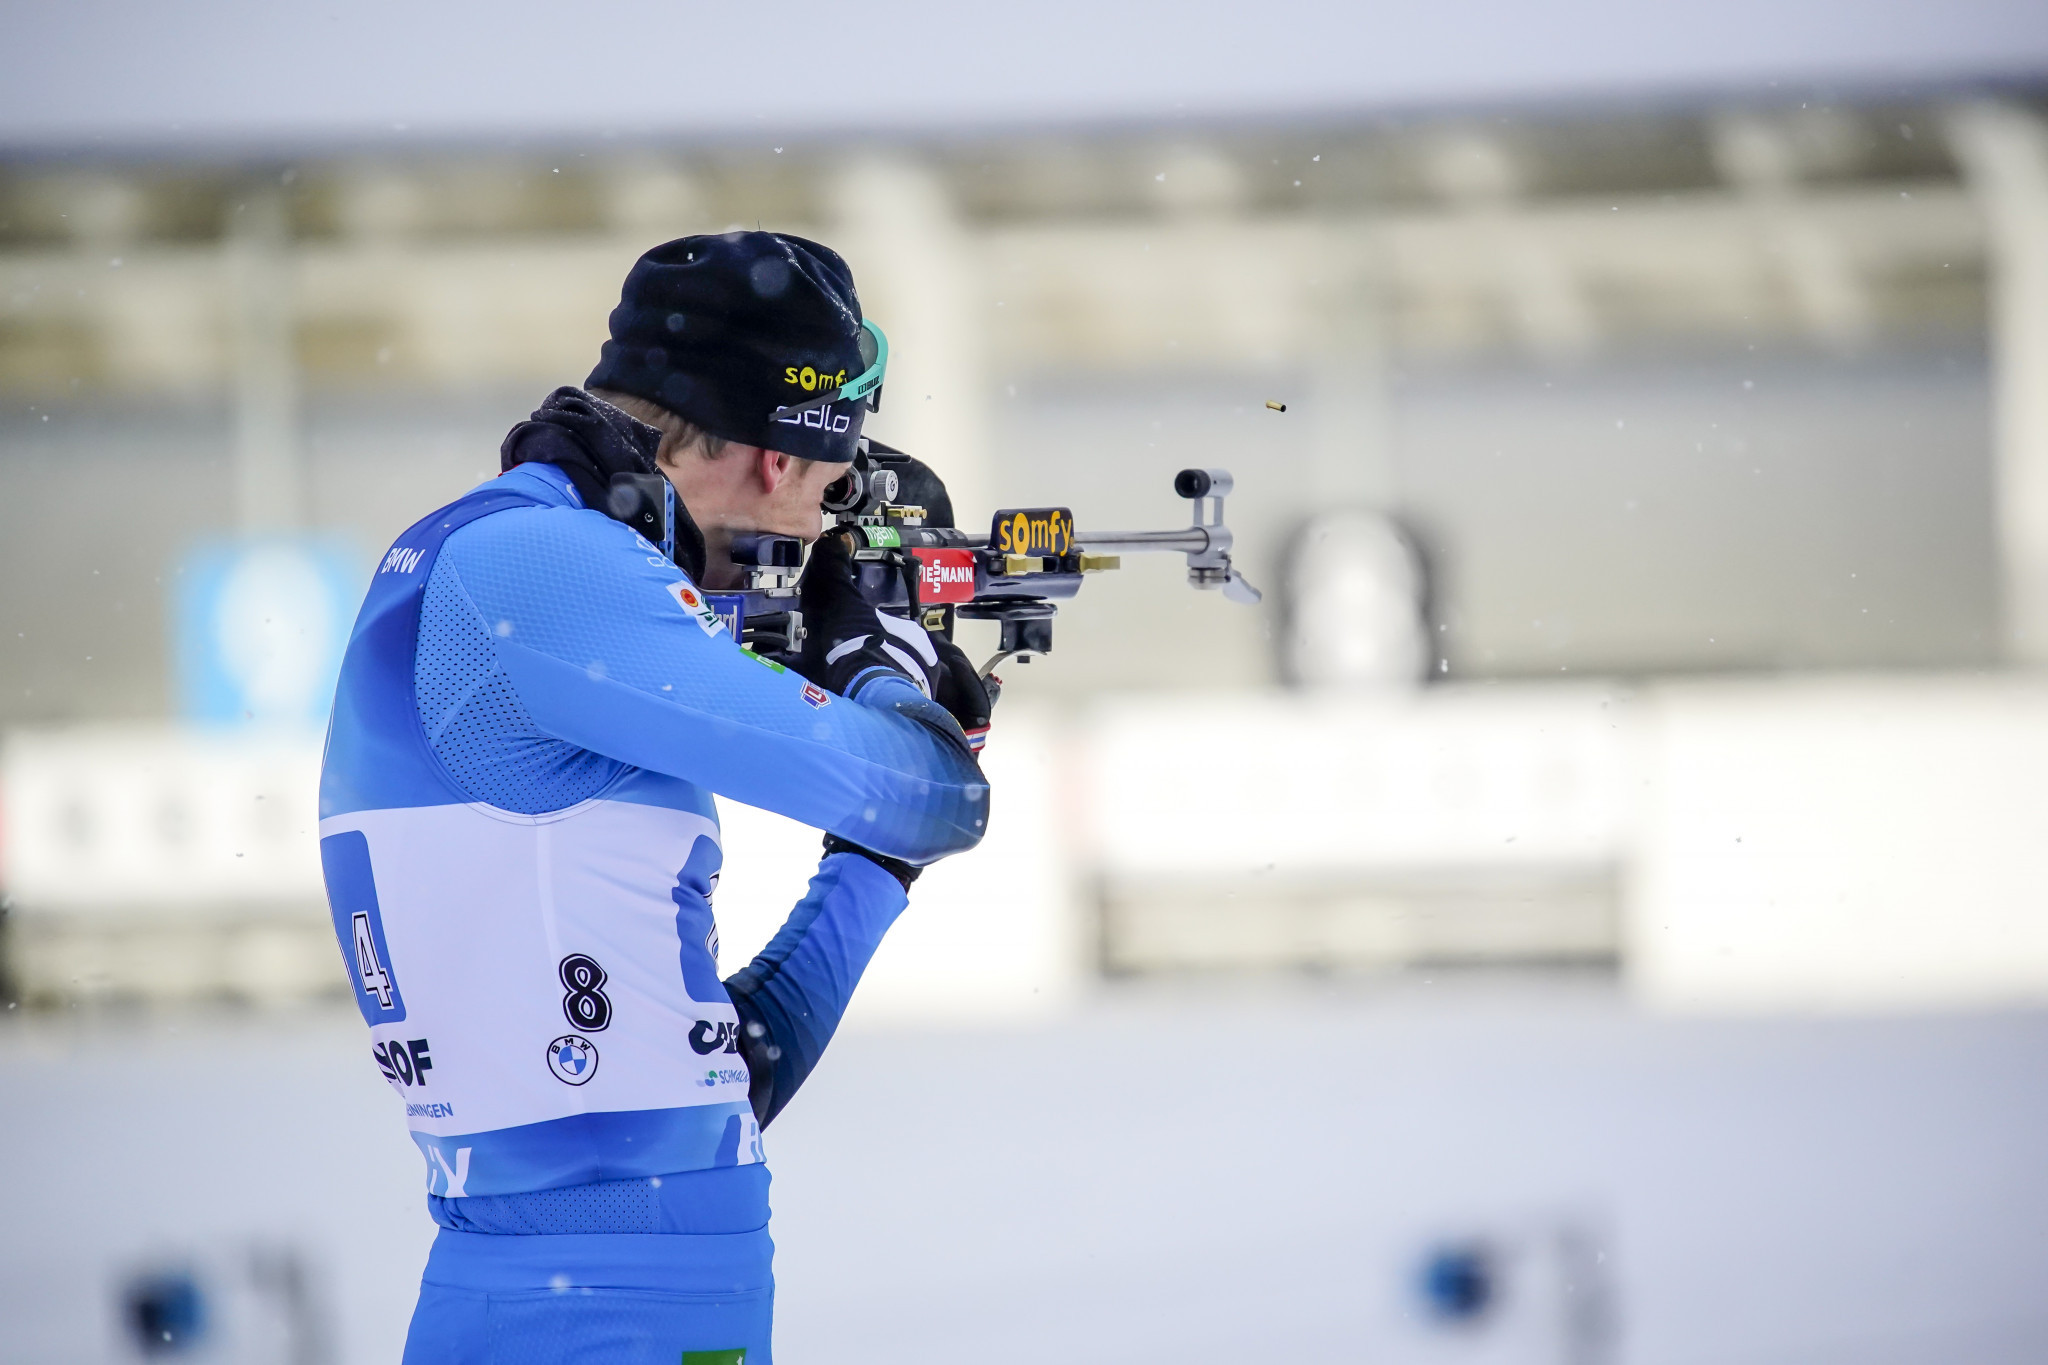 France earn men's relay victory at IBU World Cup in Oberhof